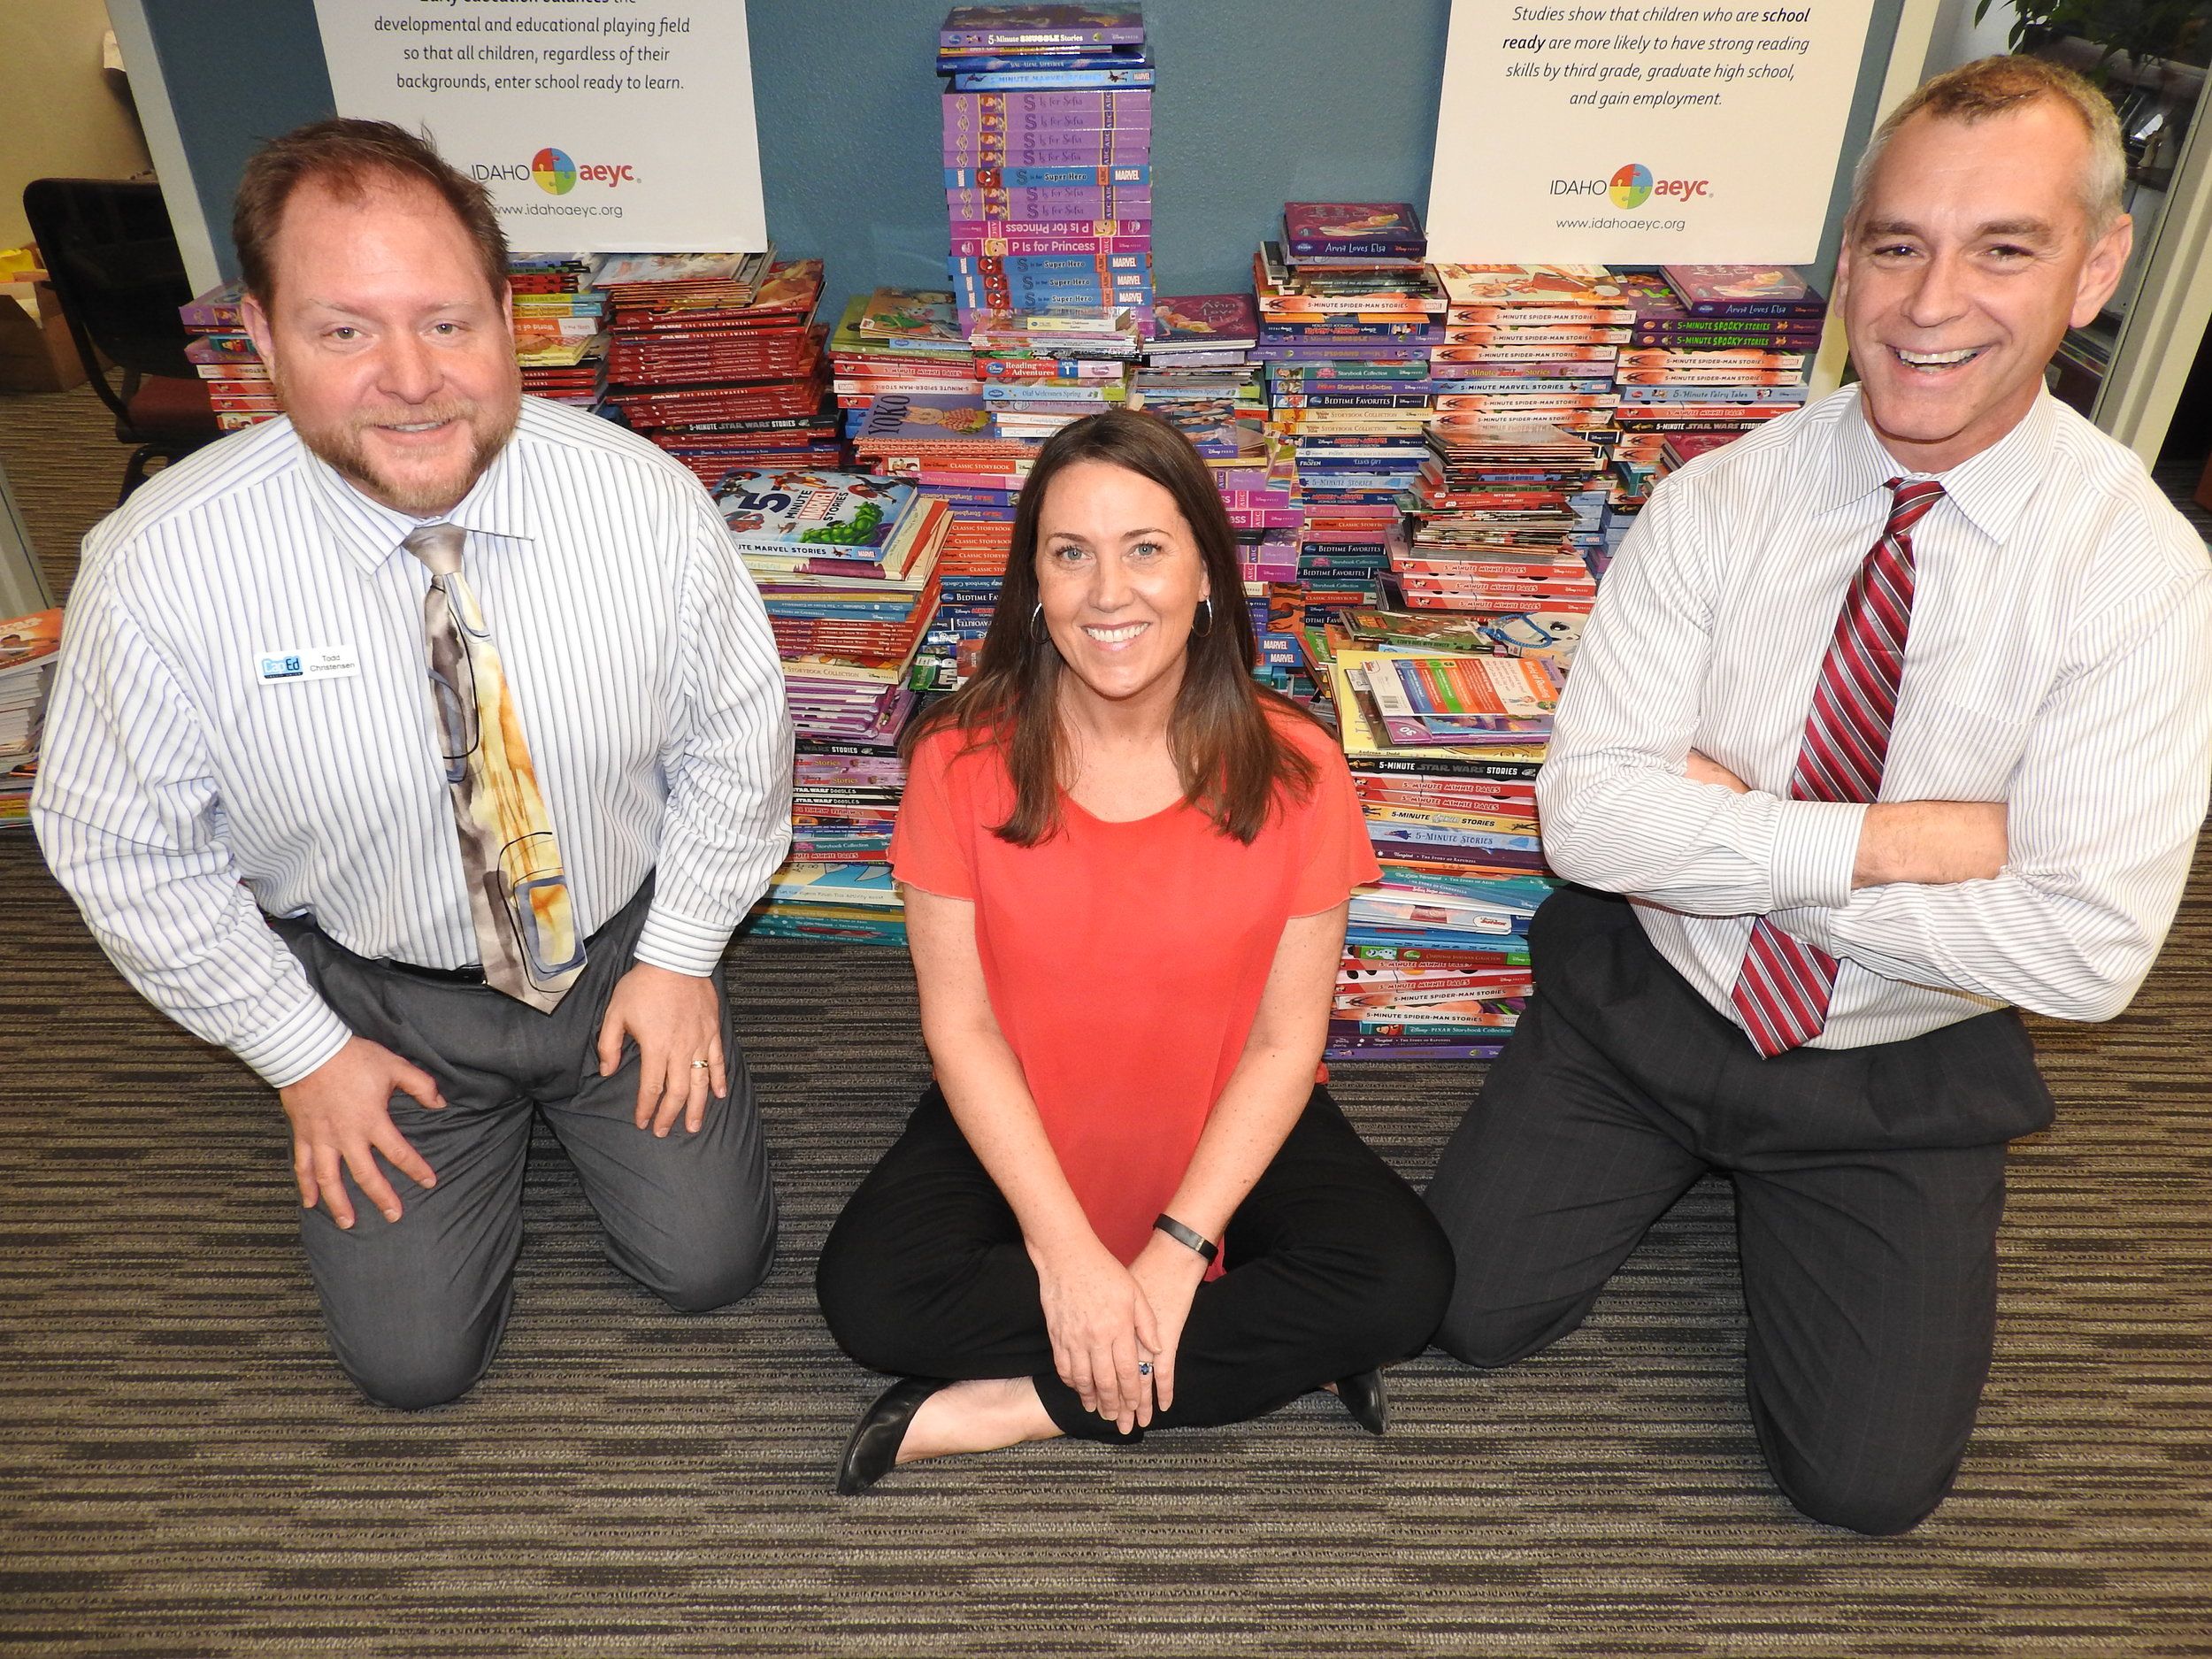 Beth Oppenheimer, Idaho AEYC, with Todd Erickson (R) and Todd Christensen (L), CapEd Credit Union in front of the 1,700+ donated books.